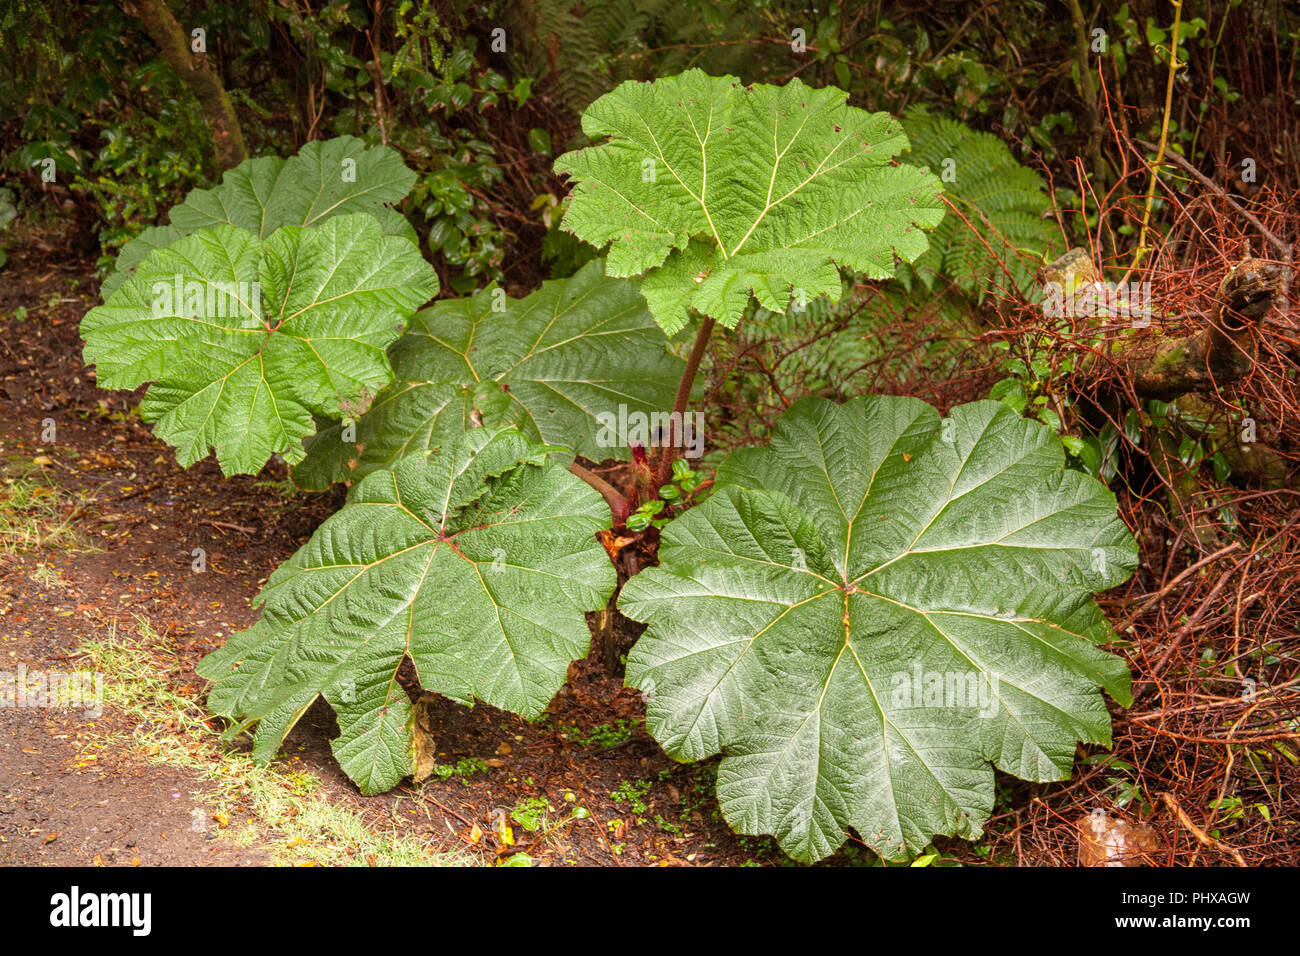 Poas Volcano National Park, Costa Rica, Central America.  The Poor Man's Umbrella plant, Gunnera insignis, a broad-leaved rainforest ground plant, is  - Stock Image